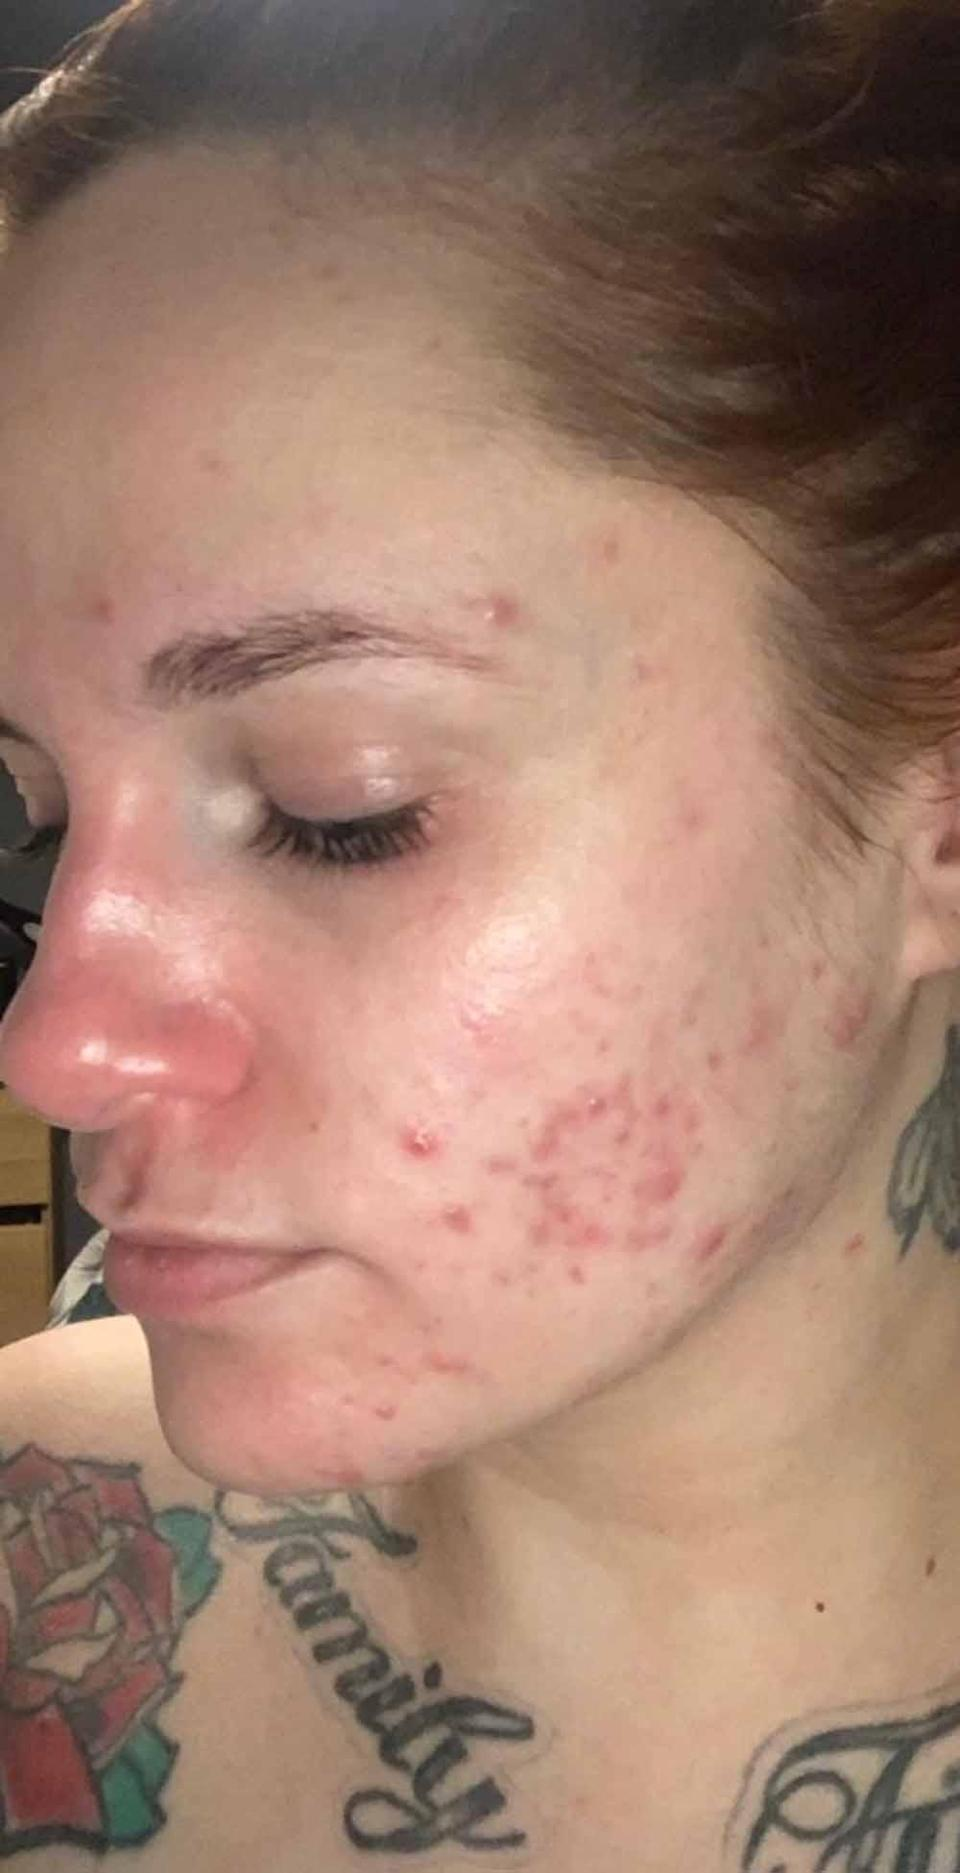 Kerrie, pictured in early summer 2020, before she started using Utan, had severe spots for 14 years. PA REAL LIFE/ COLLECT